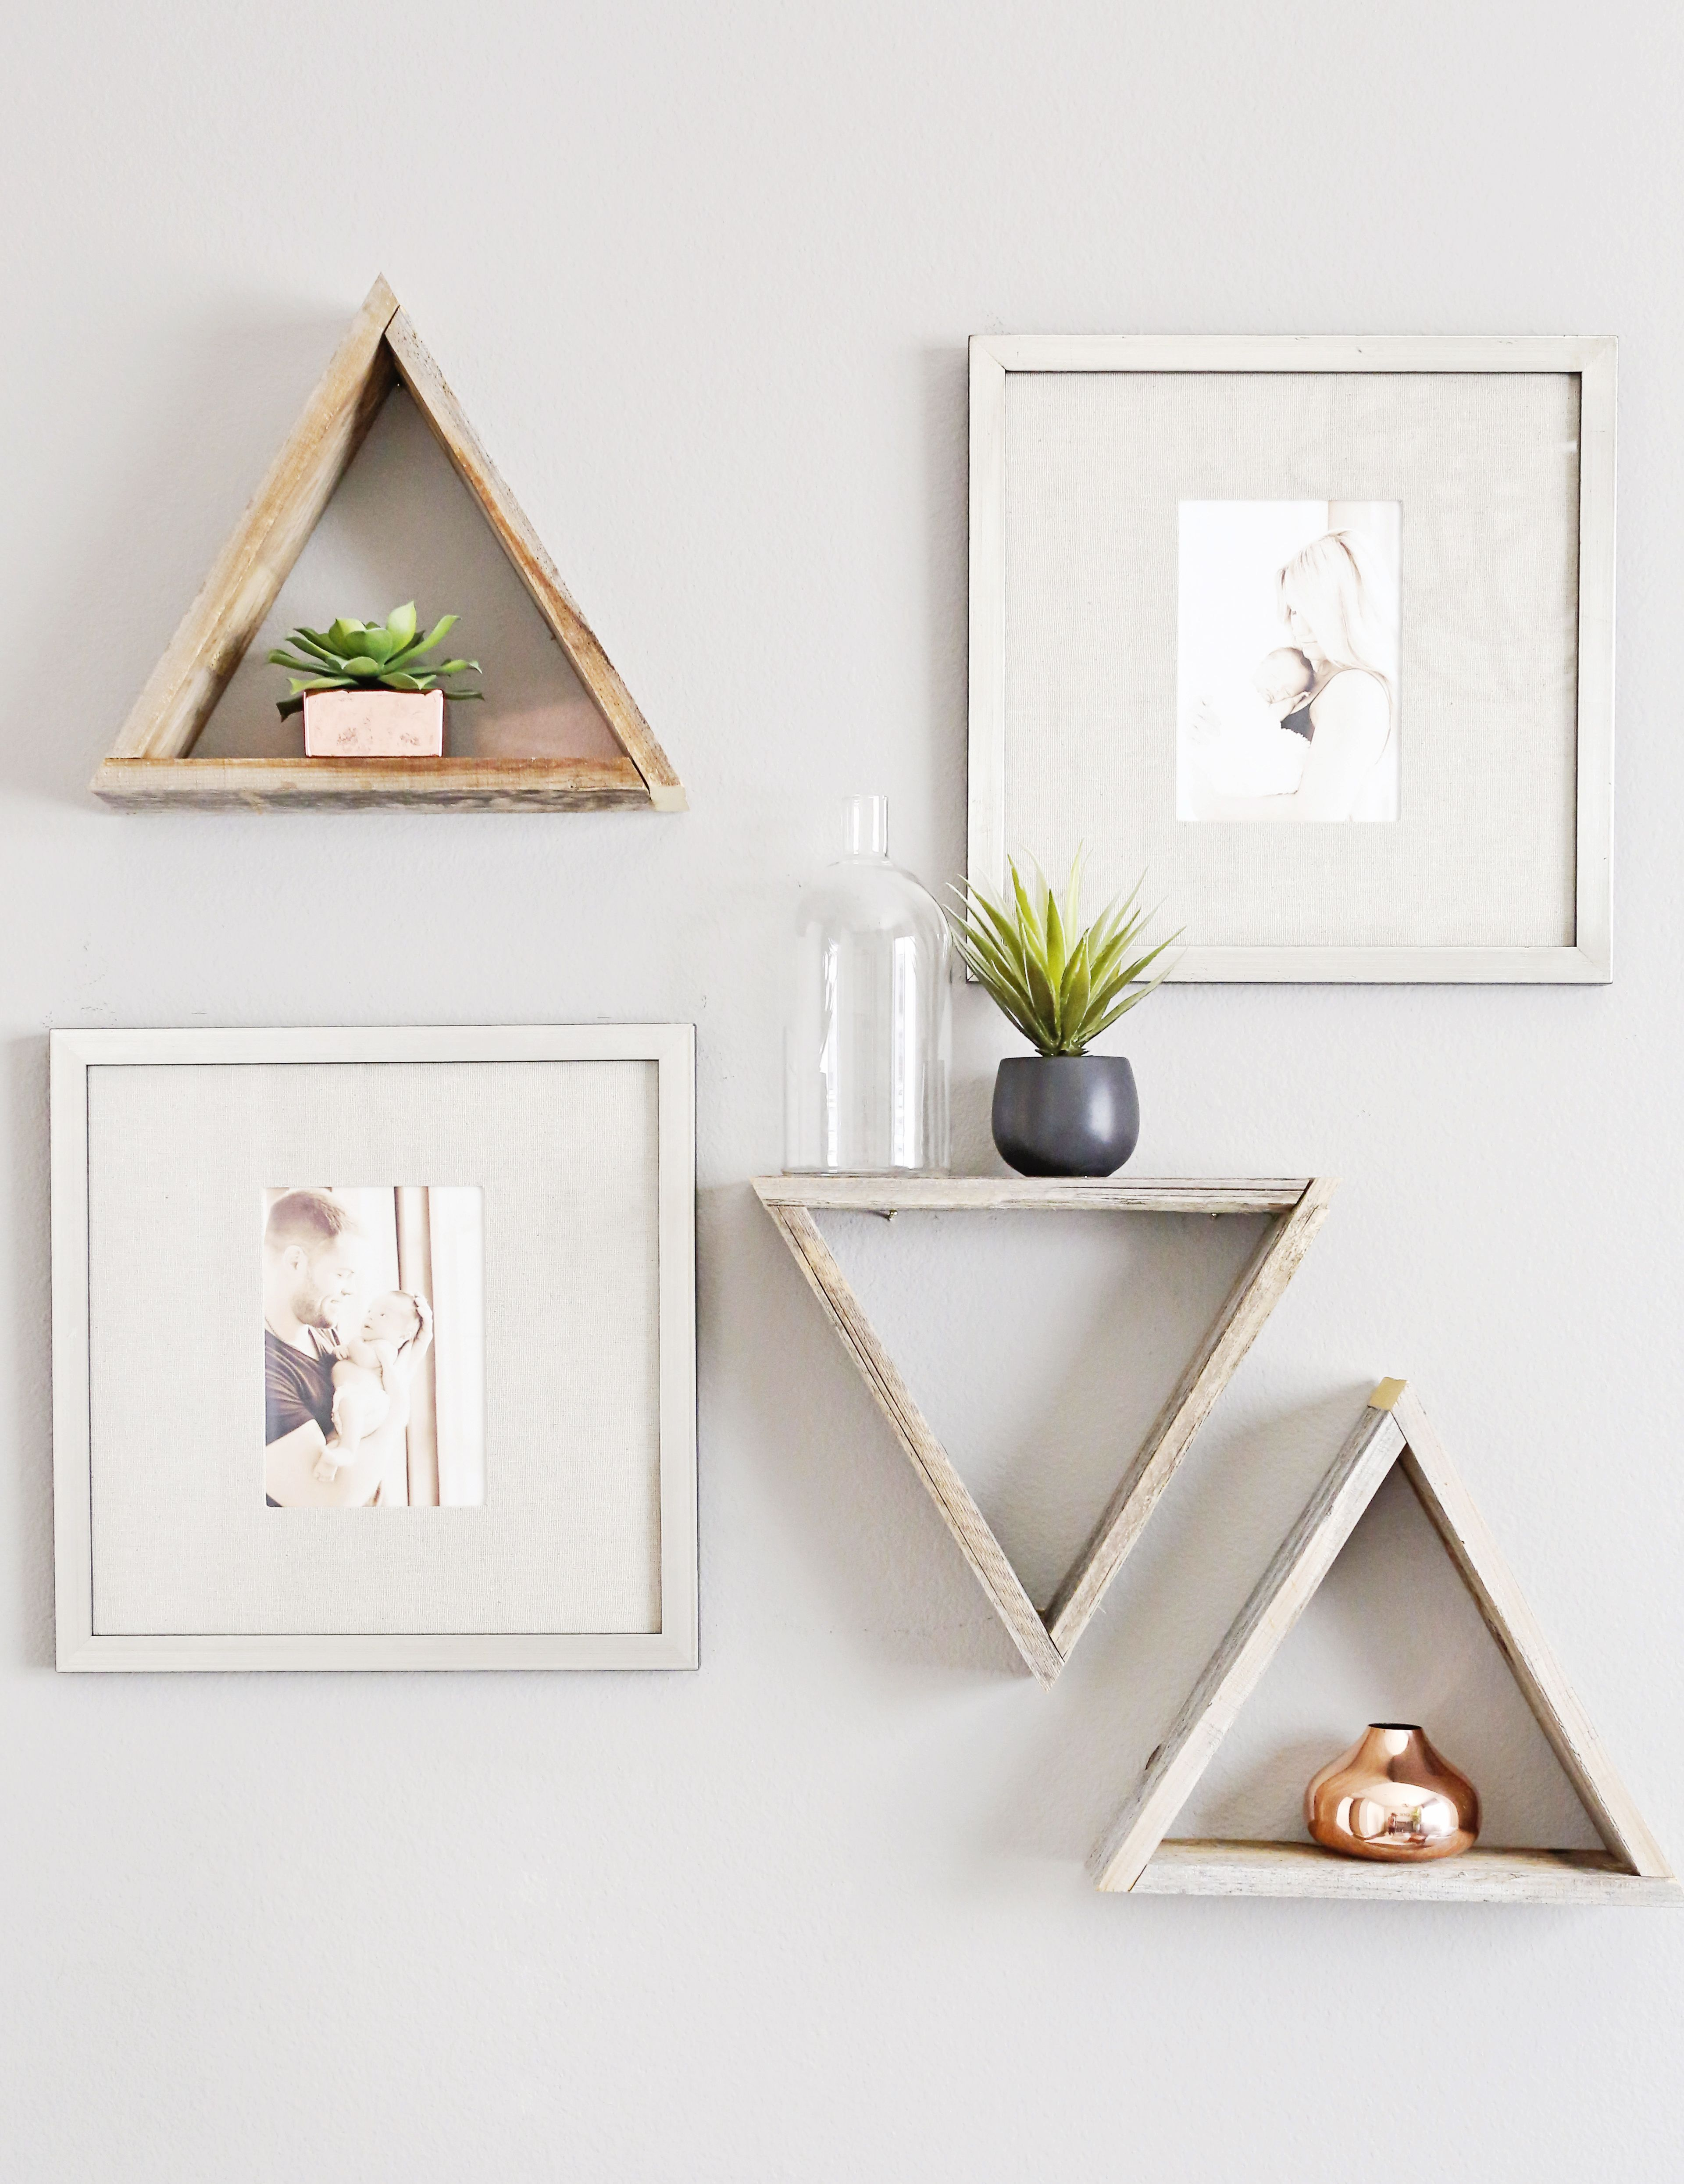 rose gold nursery decor wall ideas floating shelves modern triangle with trendy accents dewalt impact driver set home glass mini shelf breakfast bar support bracket gloss wood diy